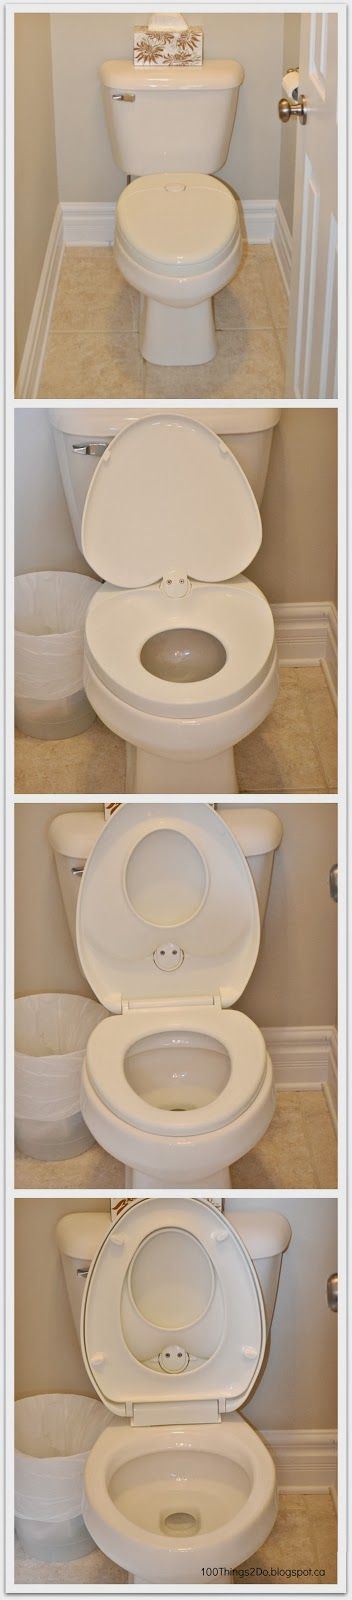 All-in-one toilet seat with sizes for the whole family. Little Butt Seat.